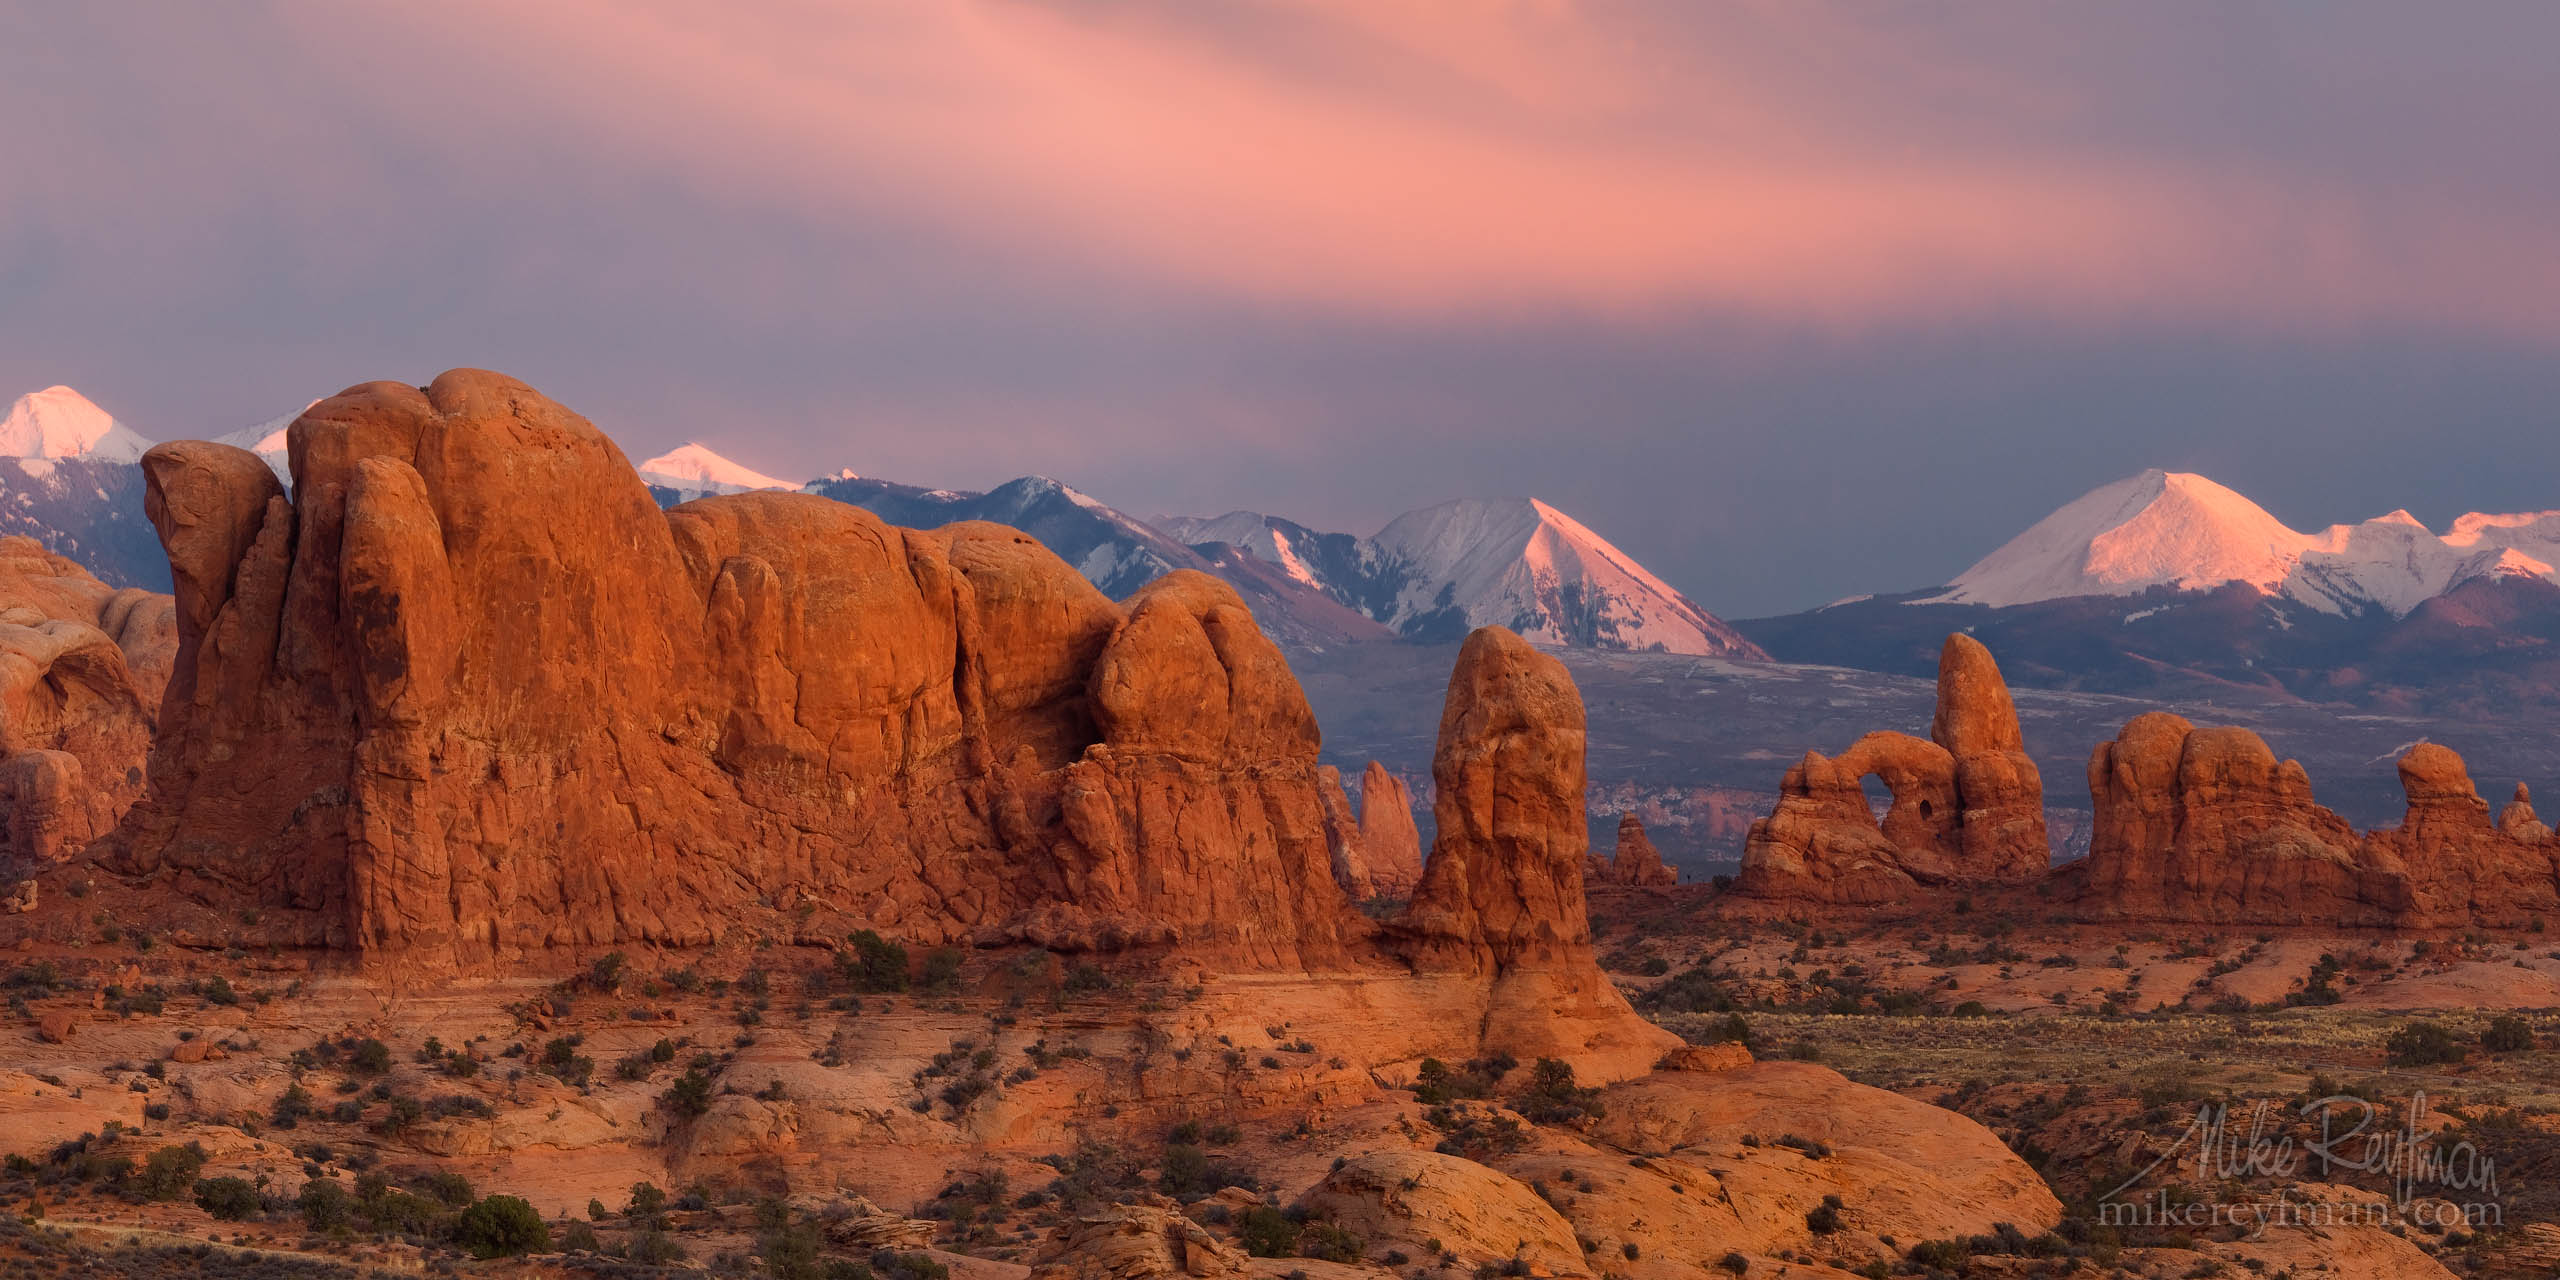 Stormy sunset over Windows Section and La Salt Mountains. Arches National Park, Utah, USA P12-MR15656-60-Pano - Selected panoramic images with 2:1 aspect ratio - Mike Reyfman Photography